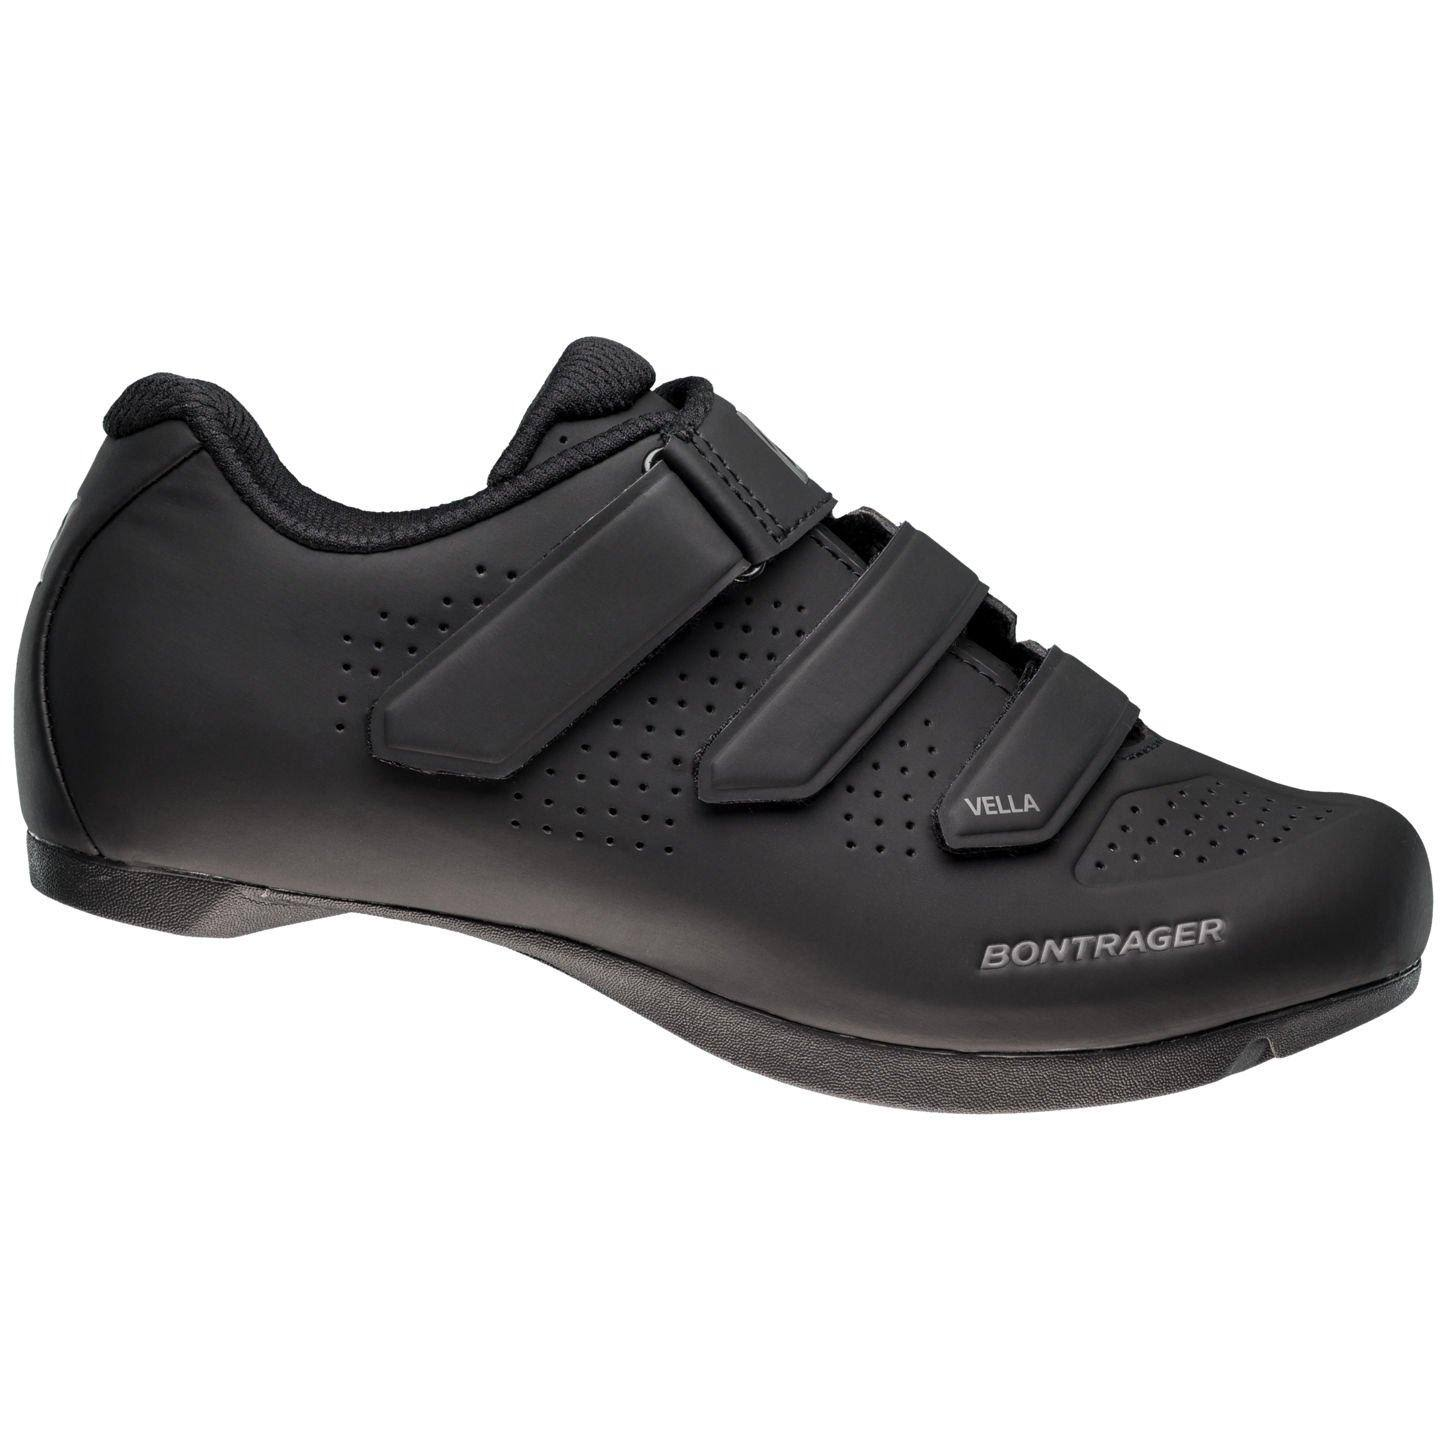 Bontrager Vella Women's Road Shoe - Black - 40